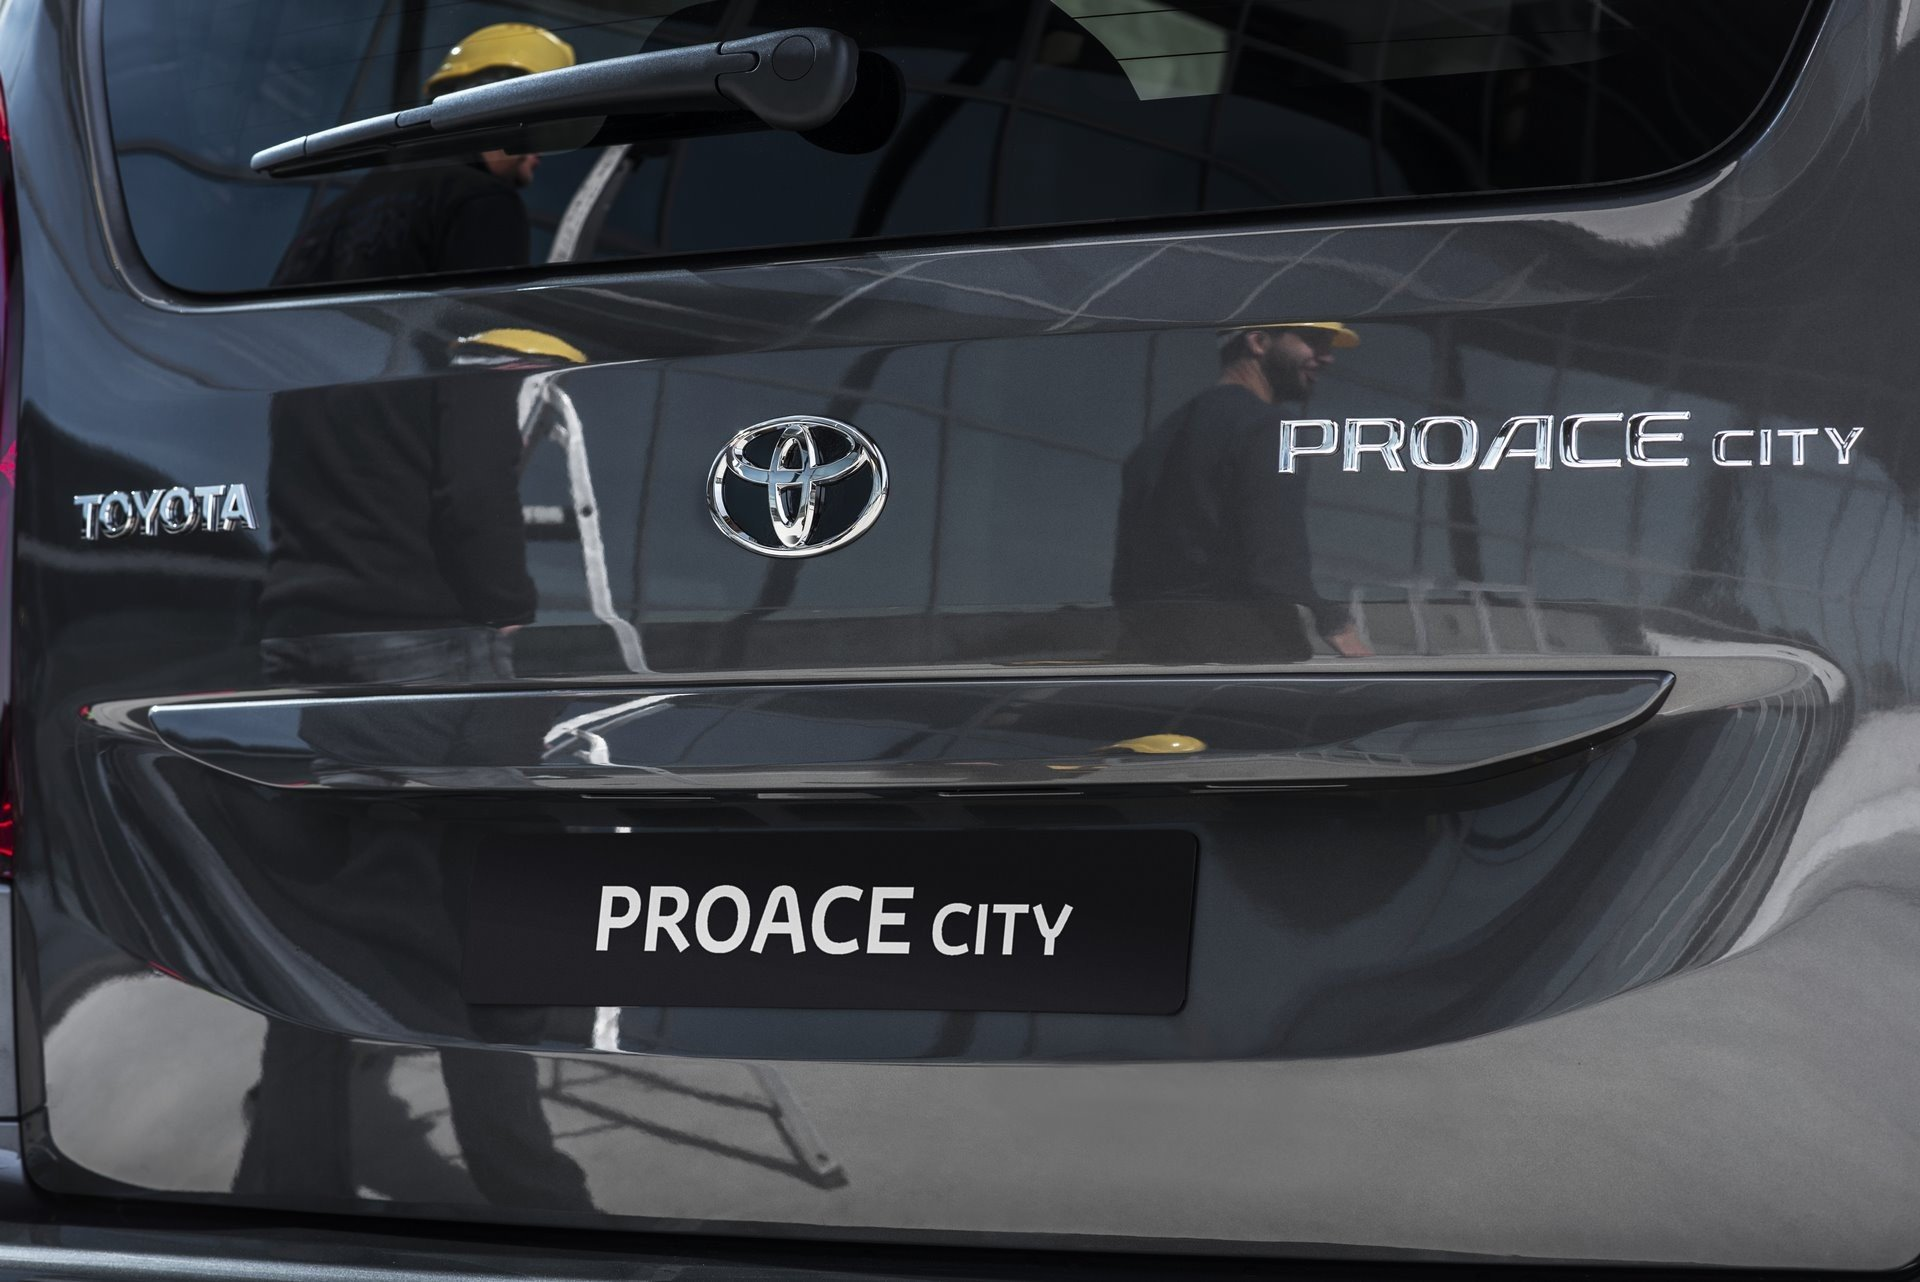 proace-city-verso-2019-044-460119